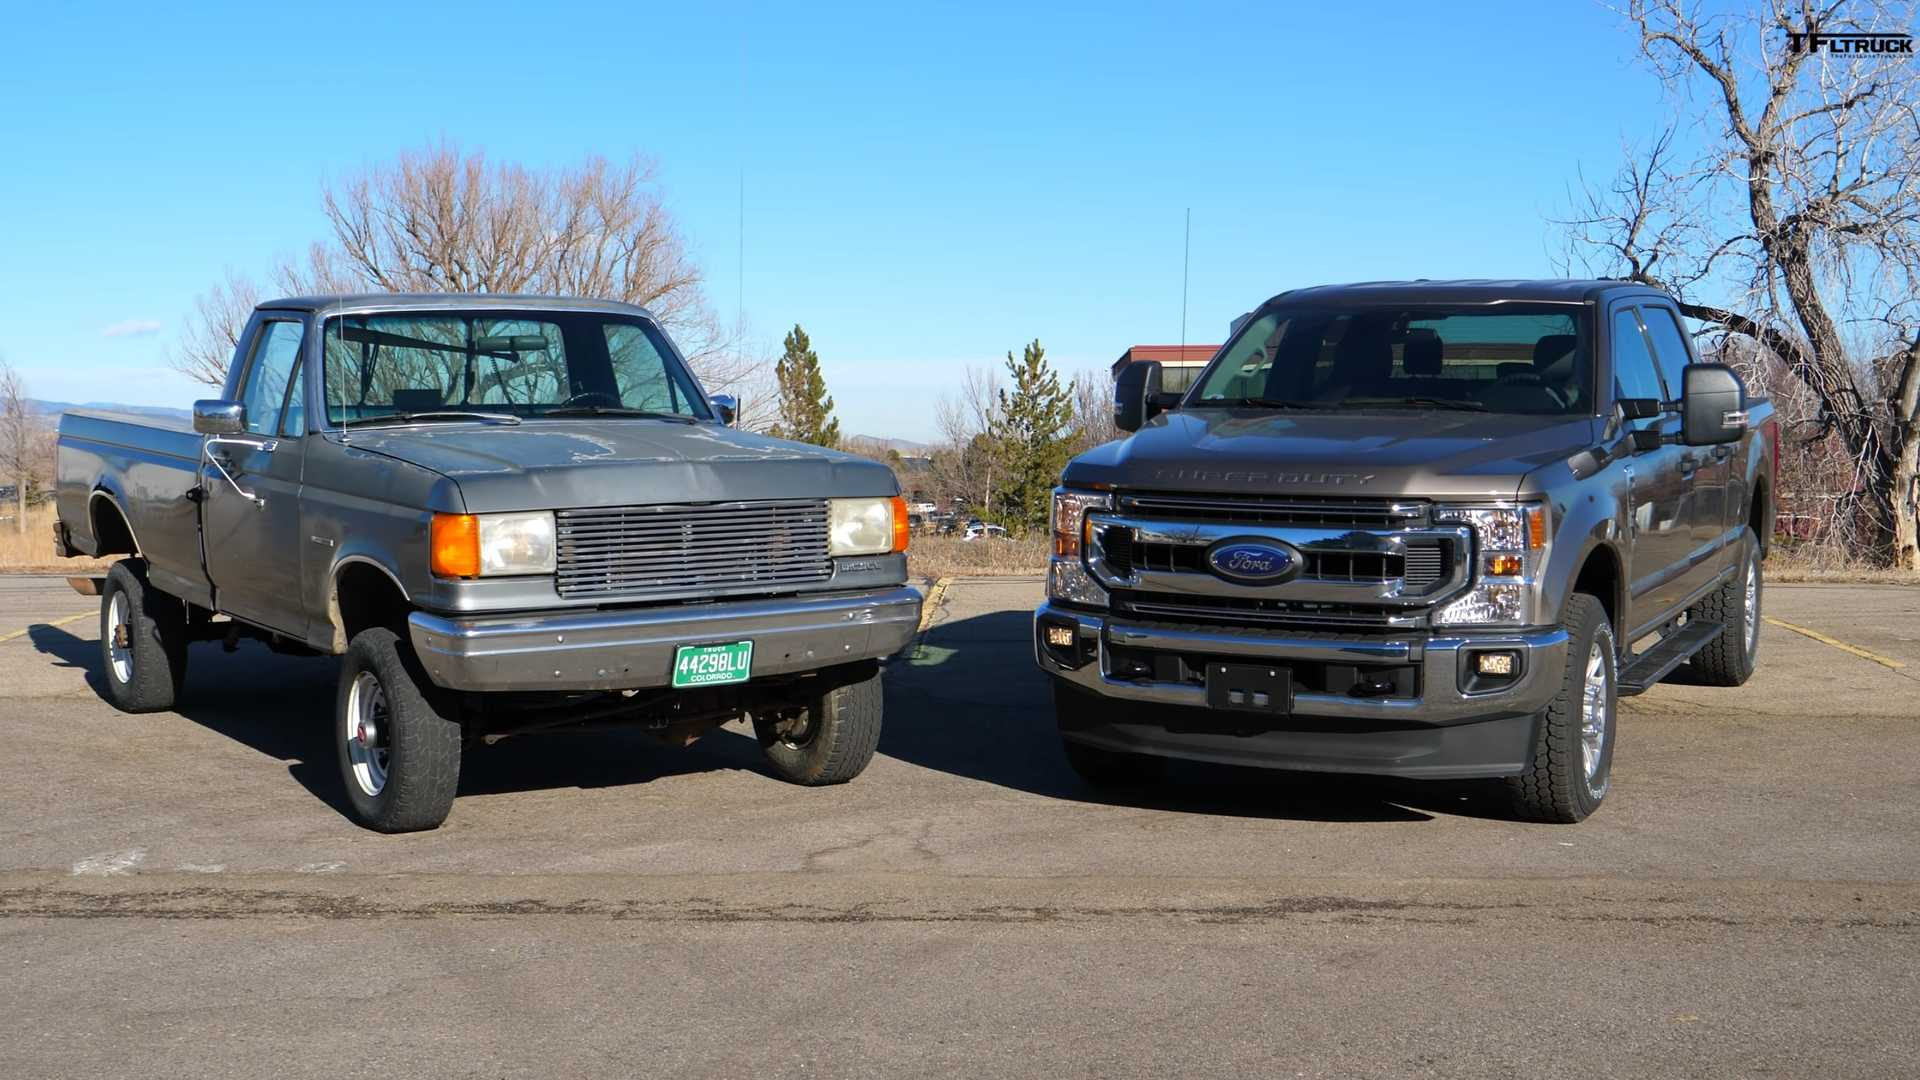 See How Different Ford 7.3-Liter-Powered Pickups Are From 1989 To Now